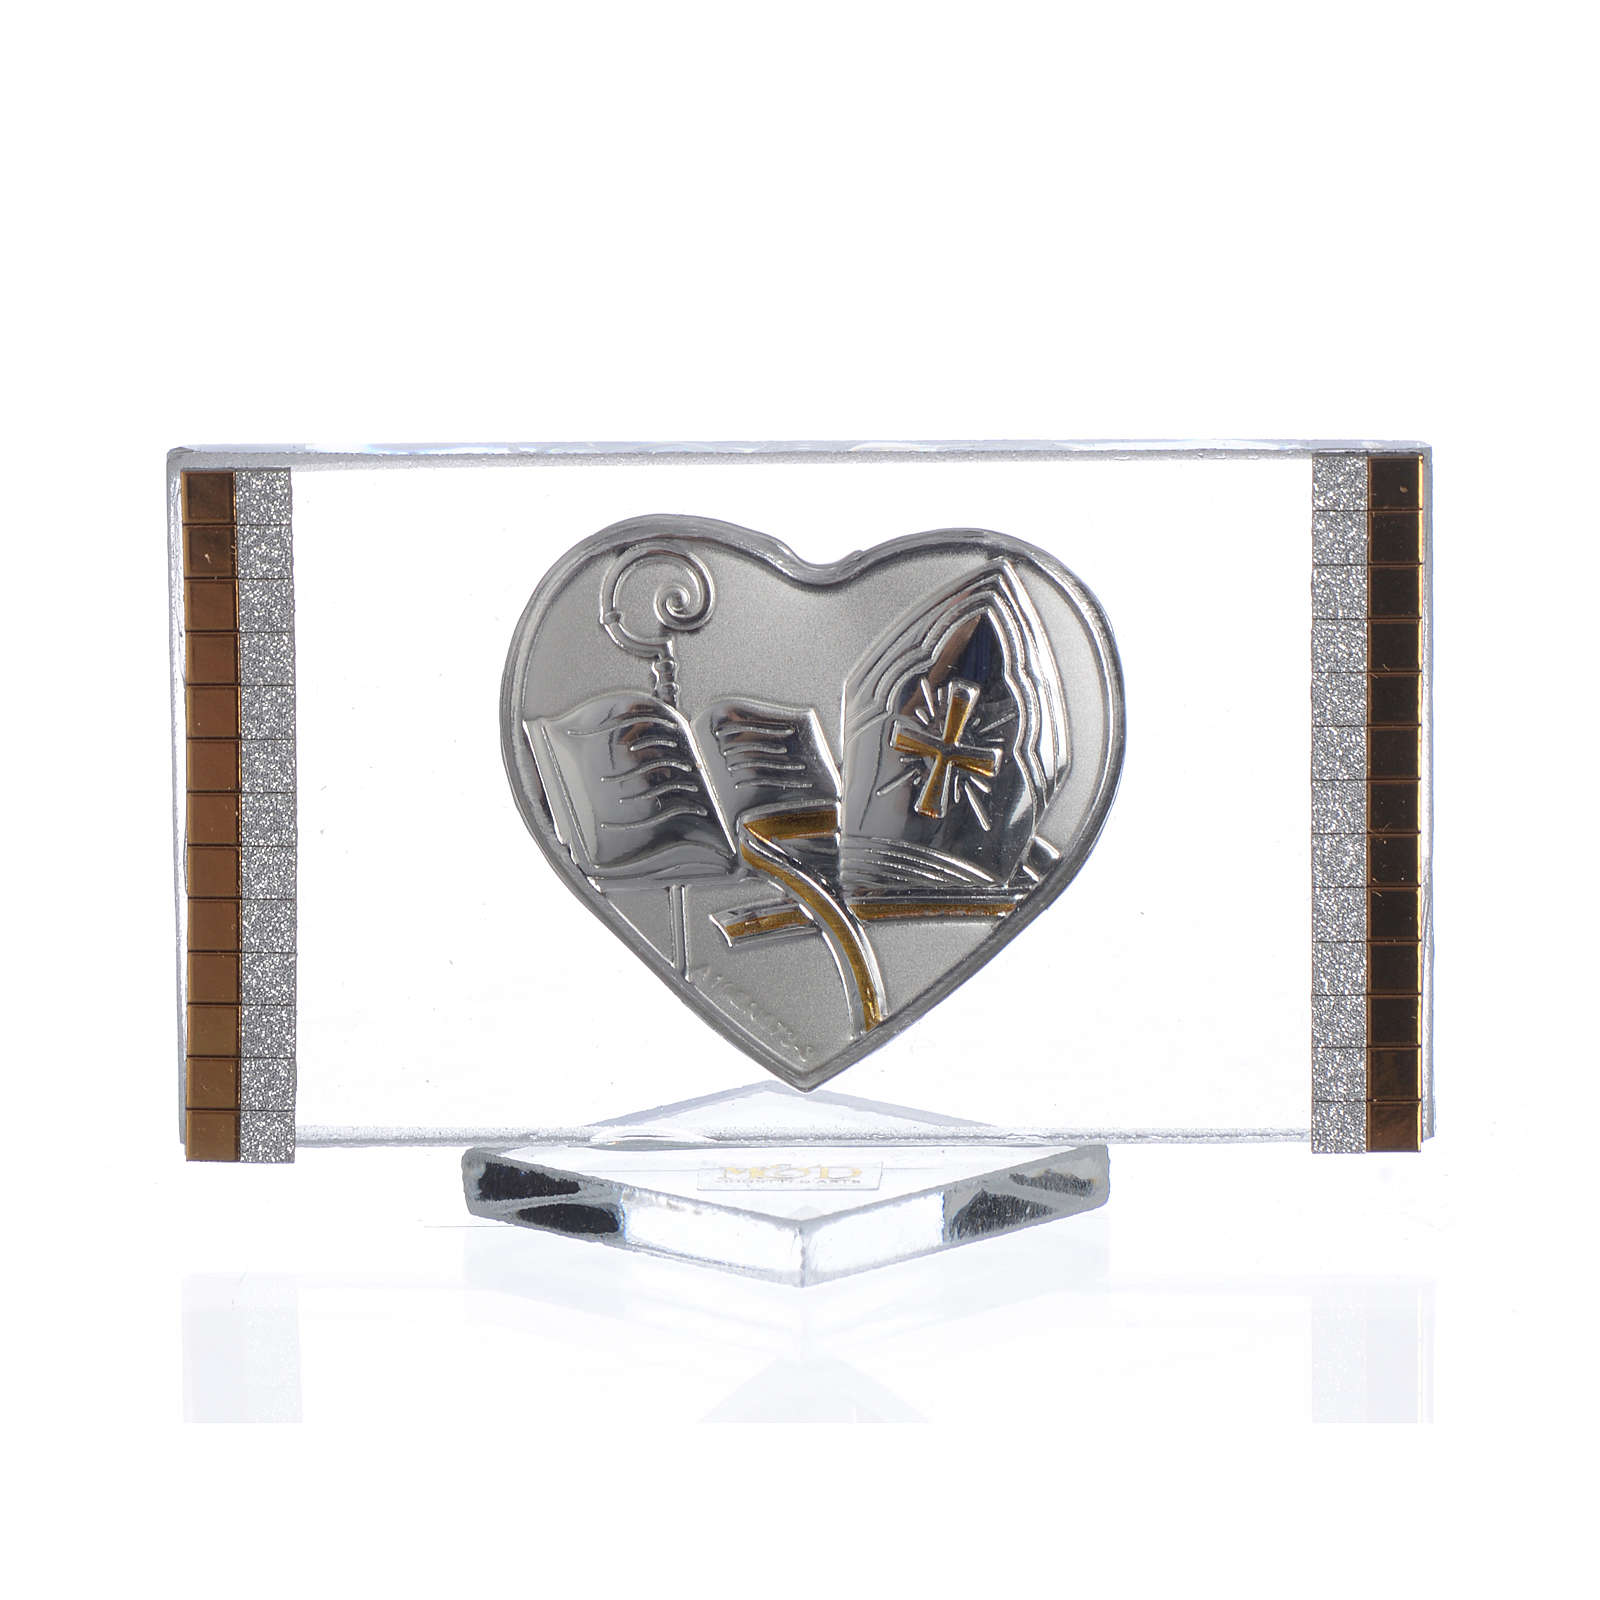 Confirmation favour, picture with heart measuring 4.5x7cm 3